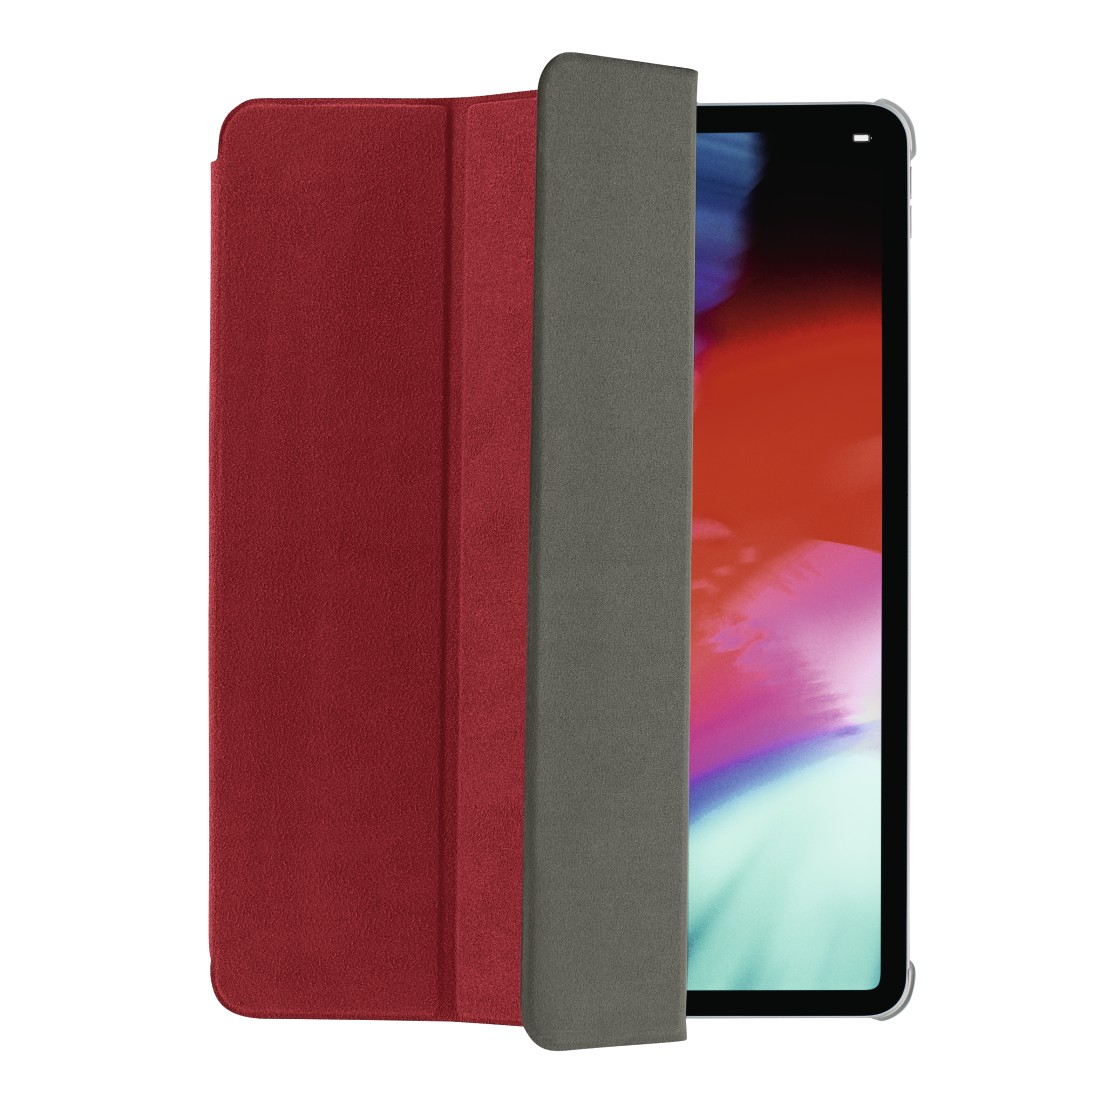 "abx High-Res Image - Hama, Tablet-case ""Suede Style"" voor Apple iPad Pro 11"", rood"